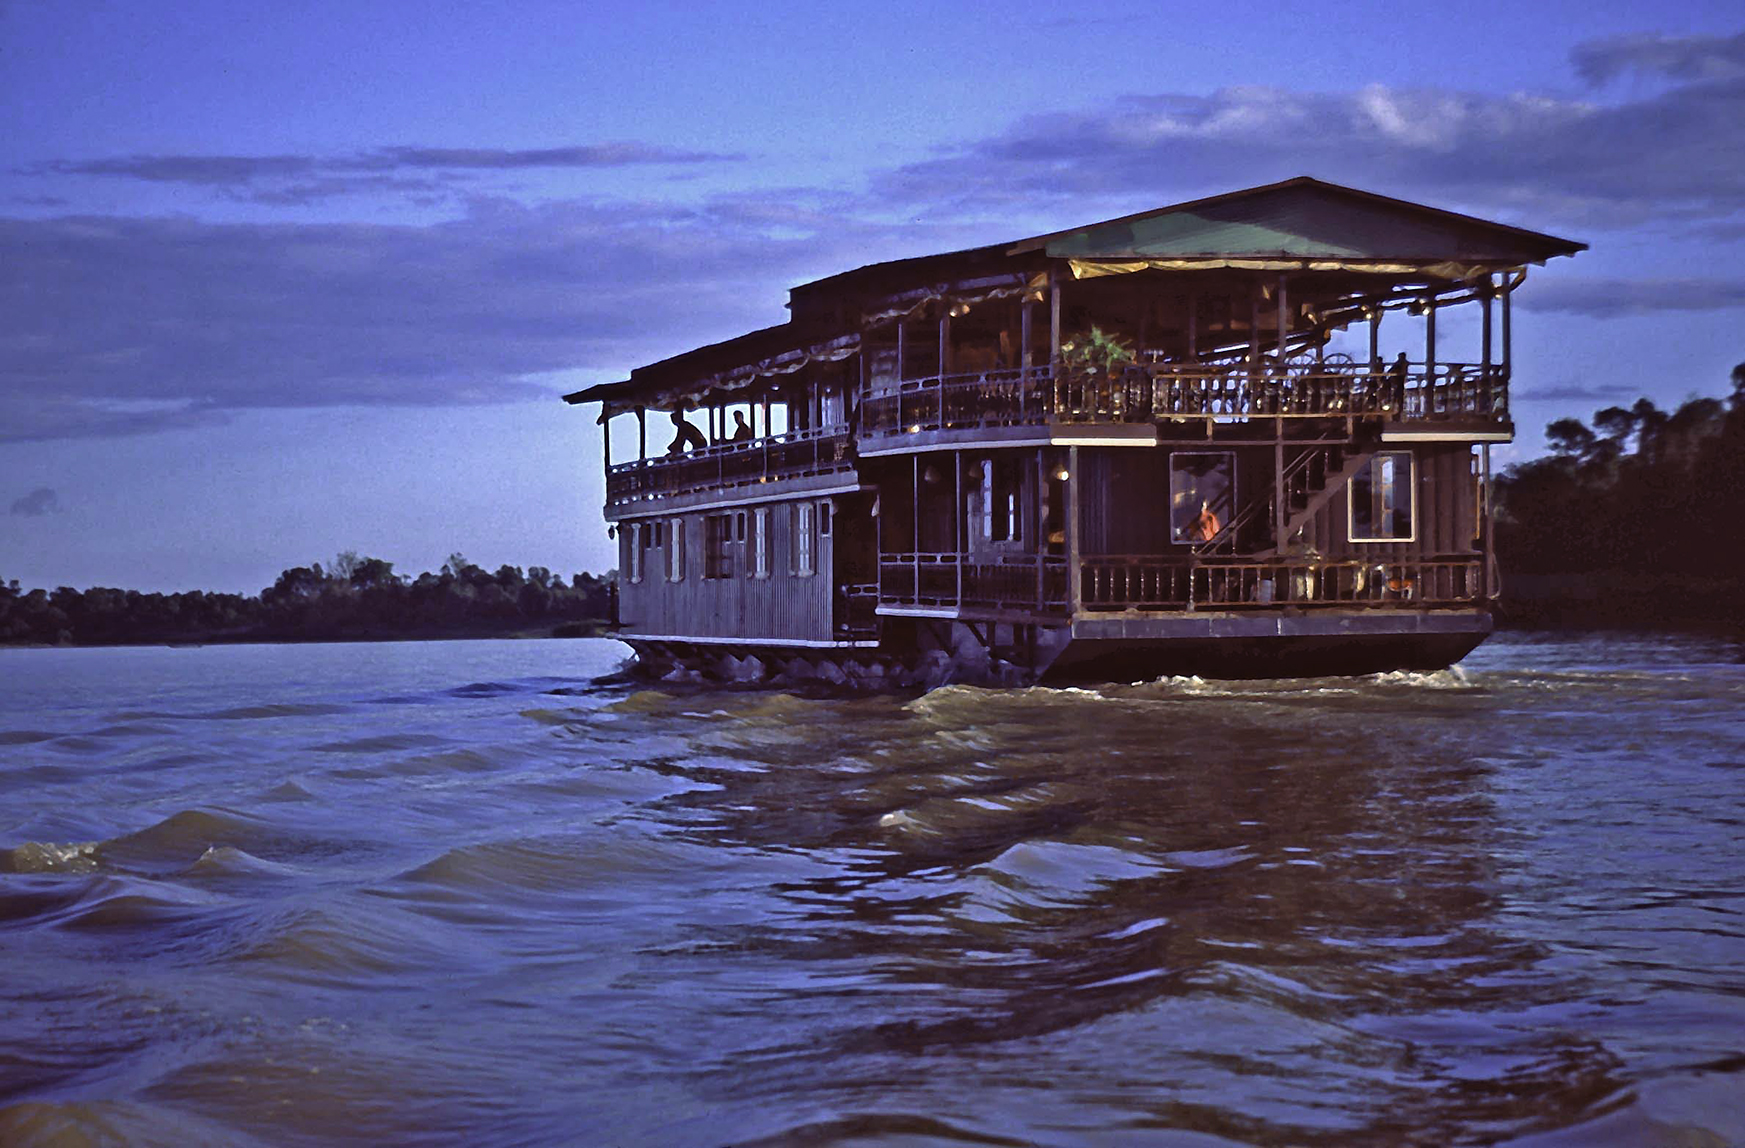 Riverboat, Mekong River